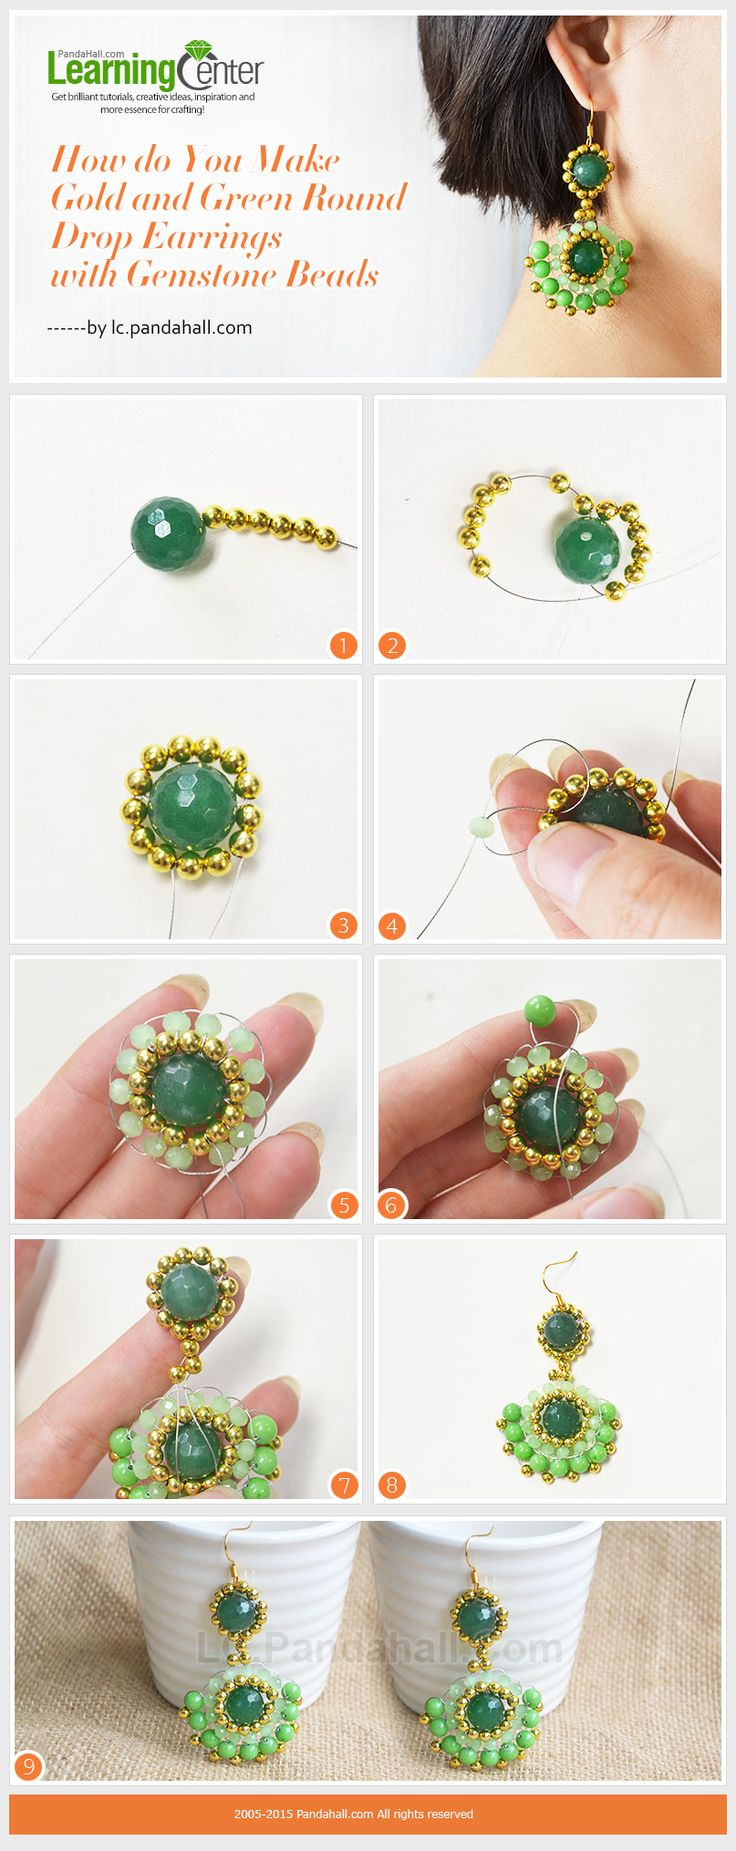 Gold and Green Round Drop Earrings